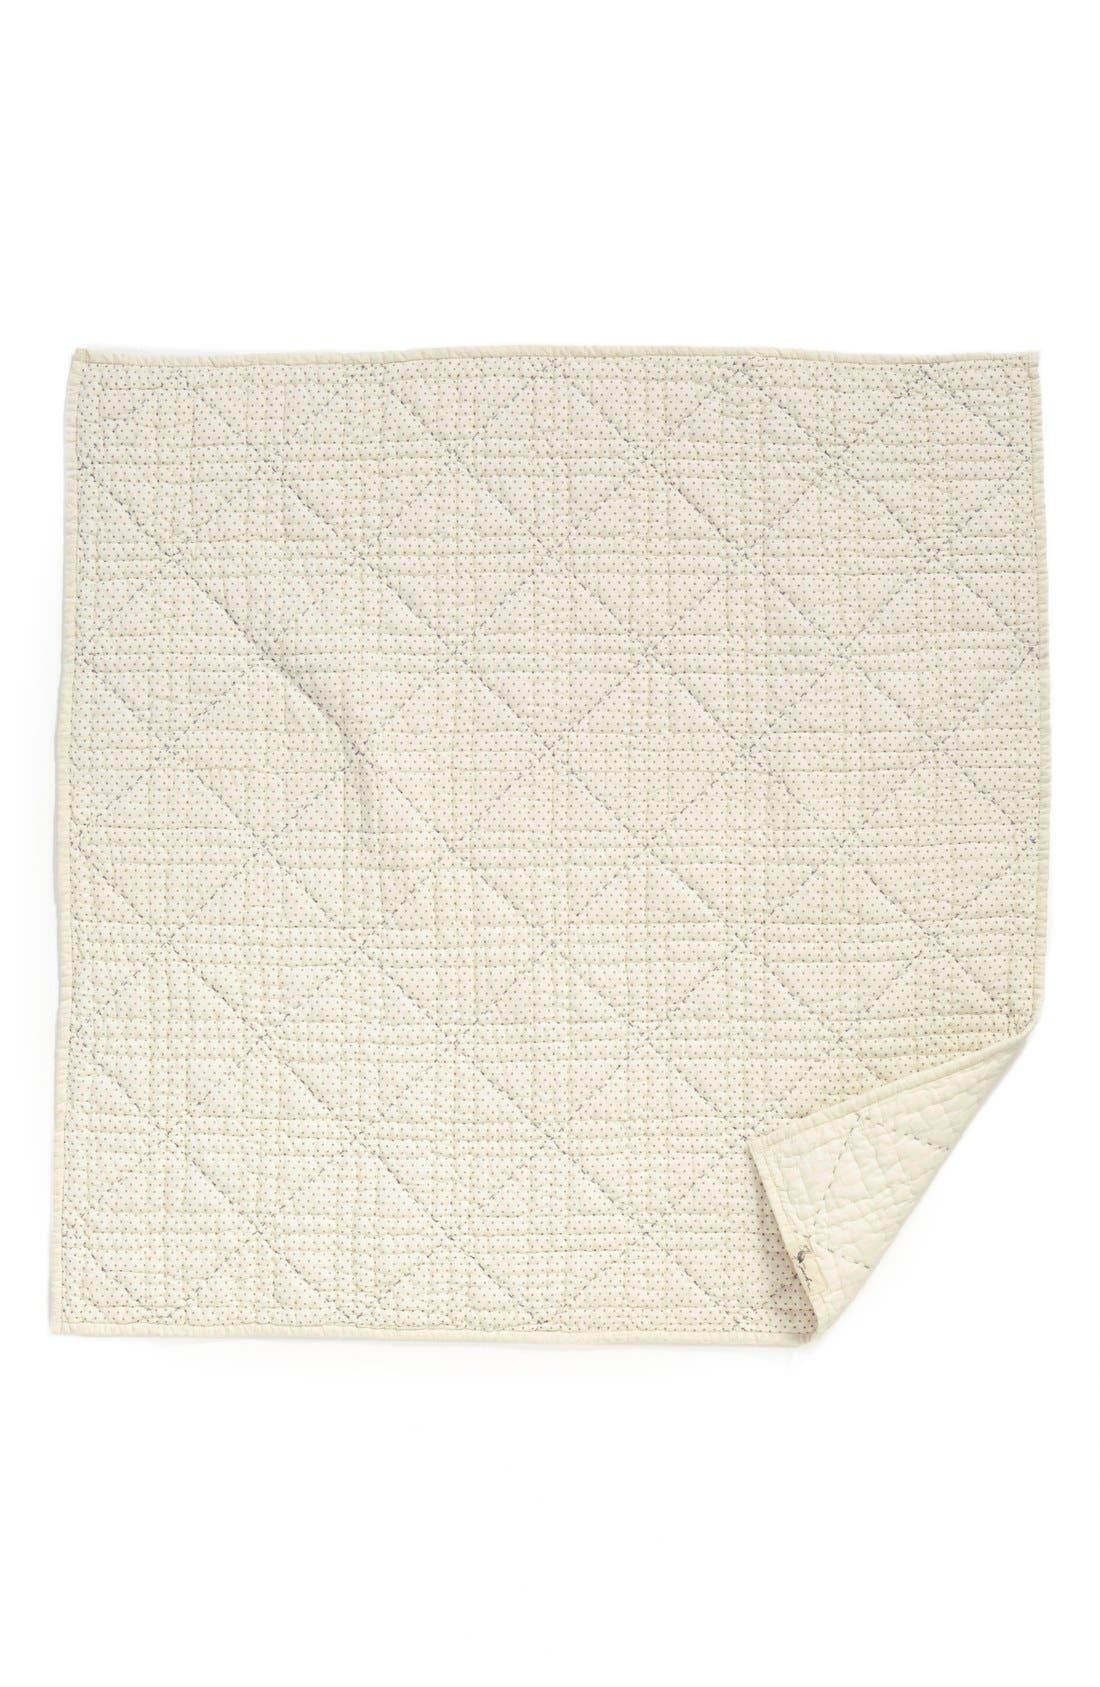 Stork Baby Blanket,                         Main,                         color, Grey